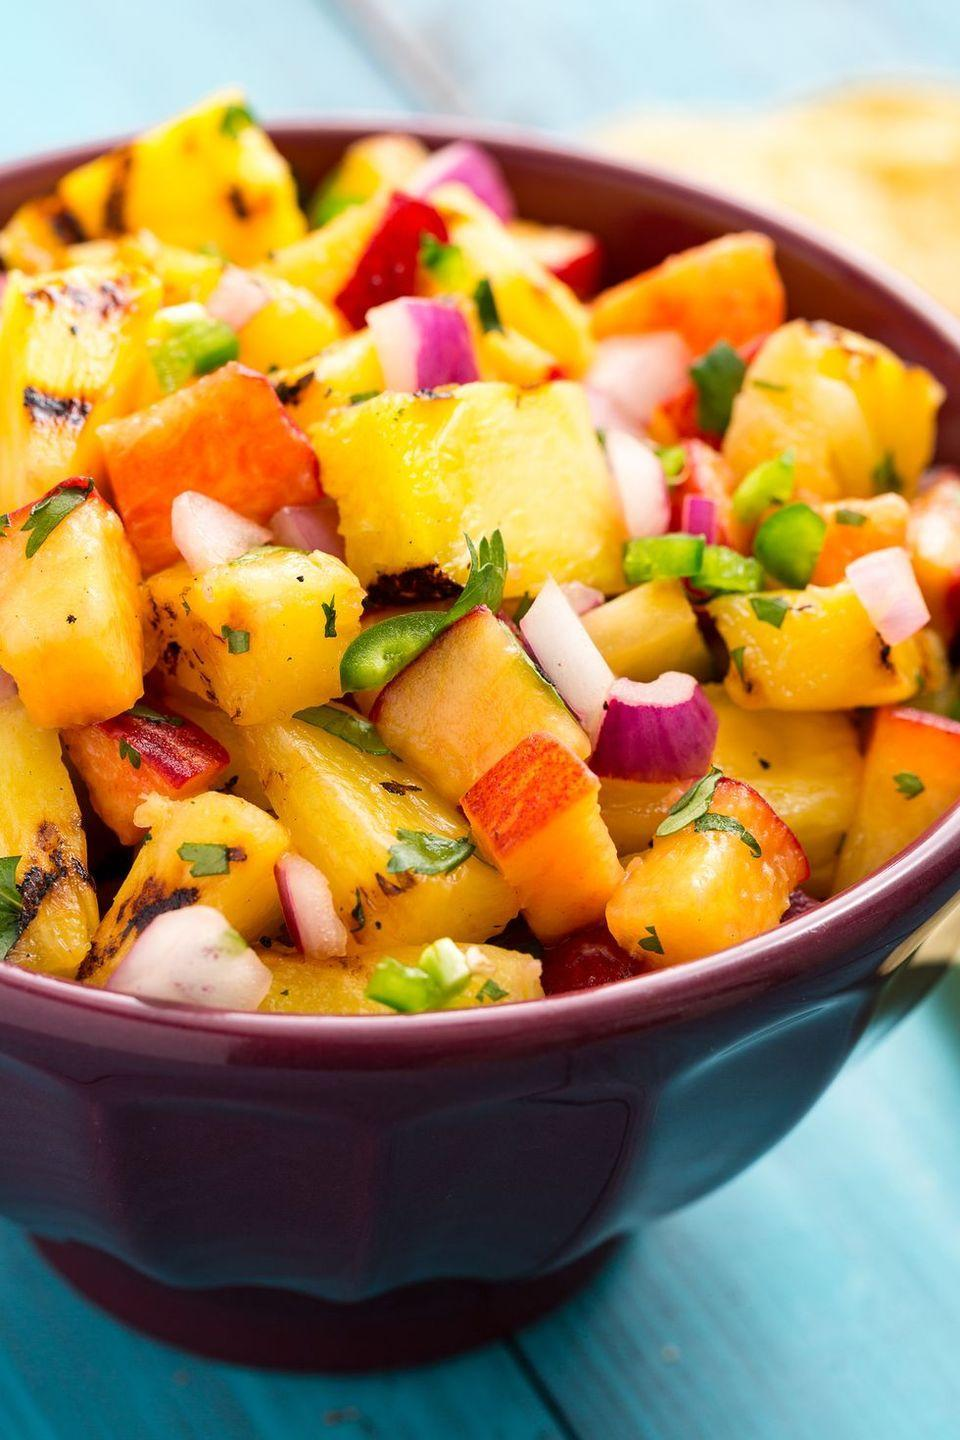 "<p>This smoky-sweet salsa will ruin you for all other dips. </p><p>Get the <a href=""https://www.delish.com/uk/cooking/recipes/a33008202/grilled-pineapple-salsa-recipe/"" rel=""nofollow noopener"" target=""_blank"" data-ylk=""slk:Grilled Pineapple Salsa"" class=""link rapid-noclick-resp"">Grilled Pineapple Salsa</a> recipe.</p>"